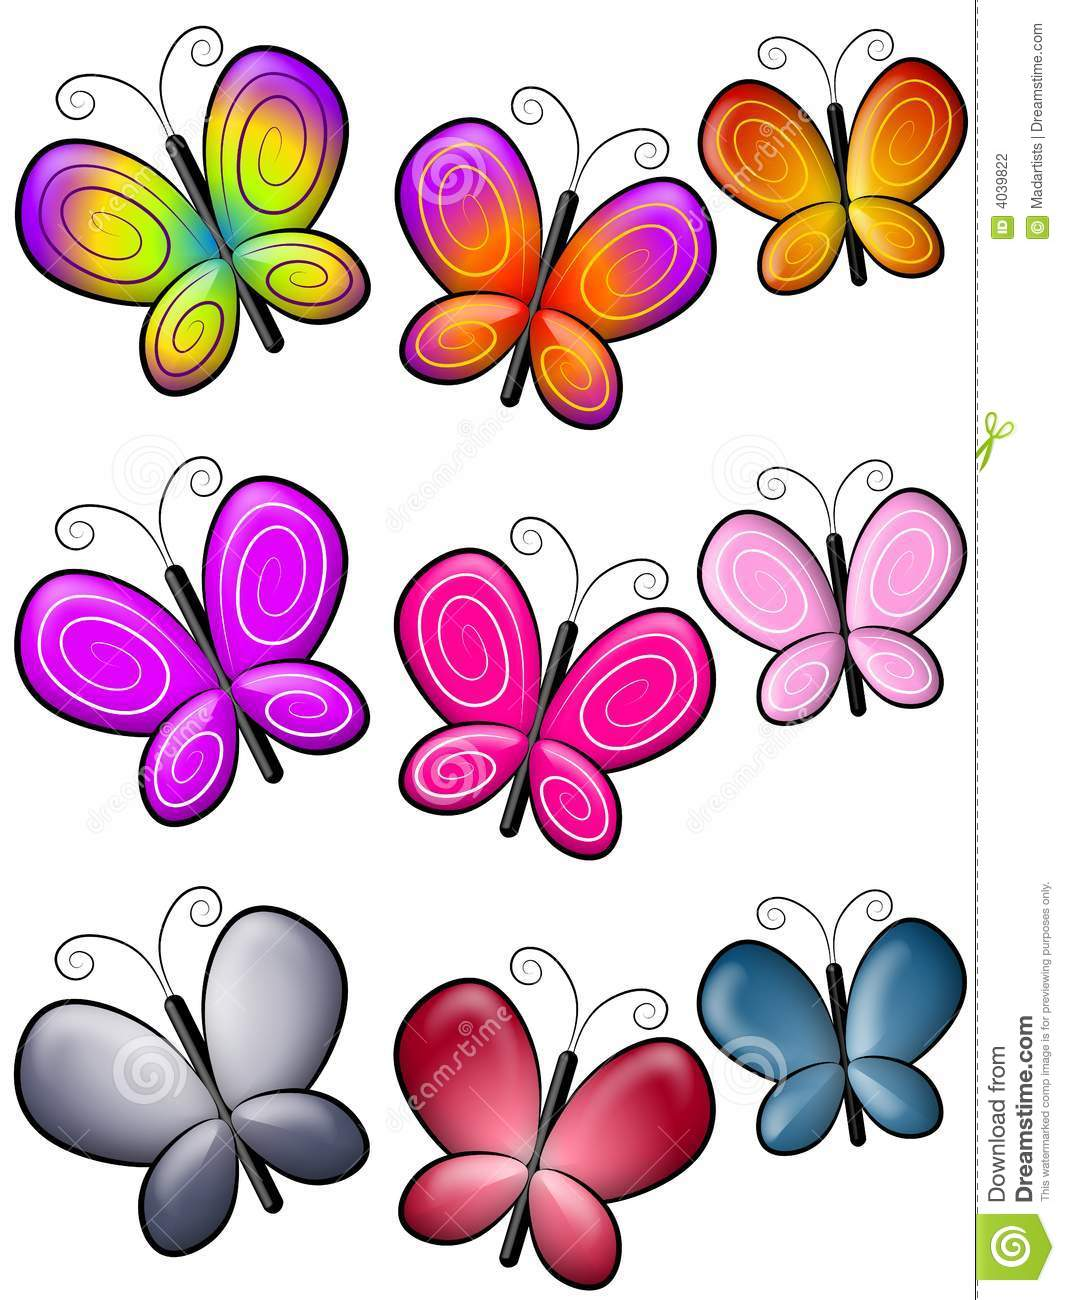 hight resolution of a clip art illustration featuring colourful butterfly borders or dividers